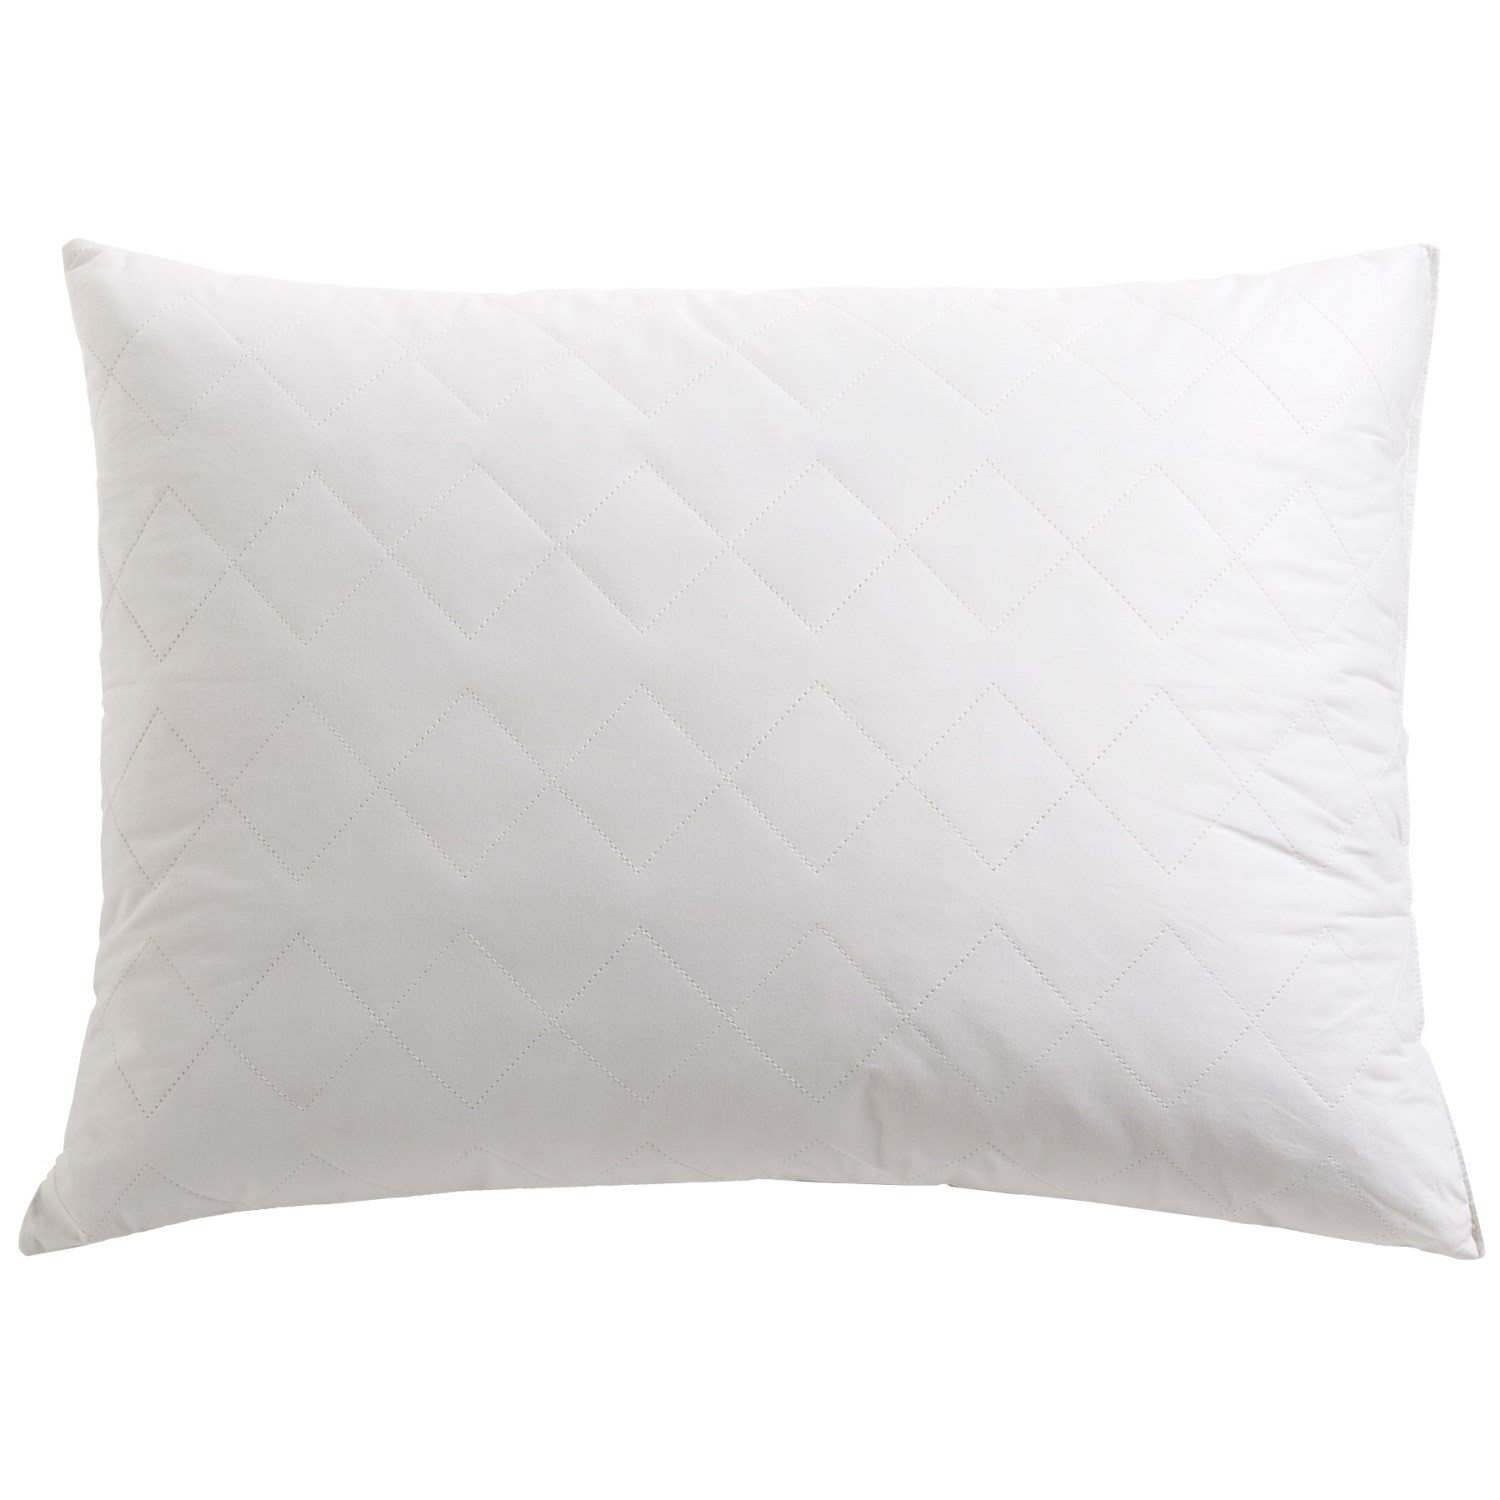 Tahari Home Decorative Pillow : Tahari Diamond Quilt Feather Pillow - Super Standard, 230 TC Cotton - Save 45%